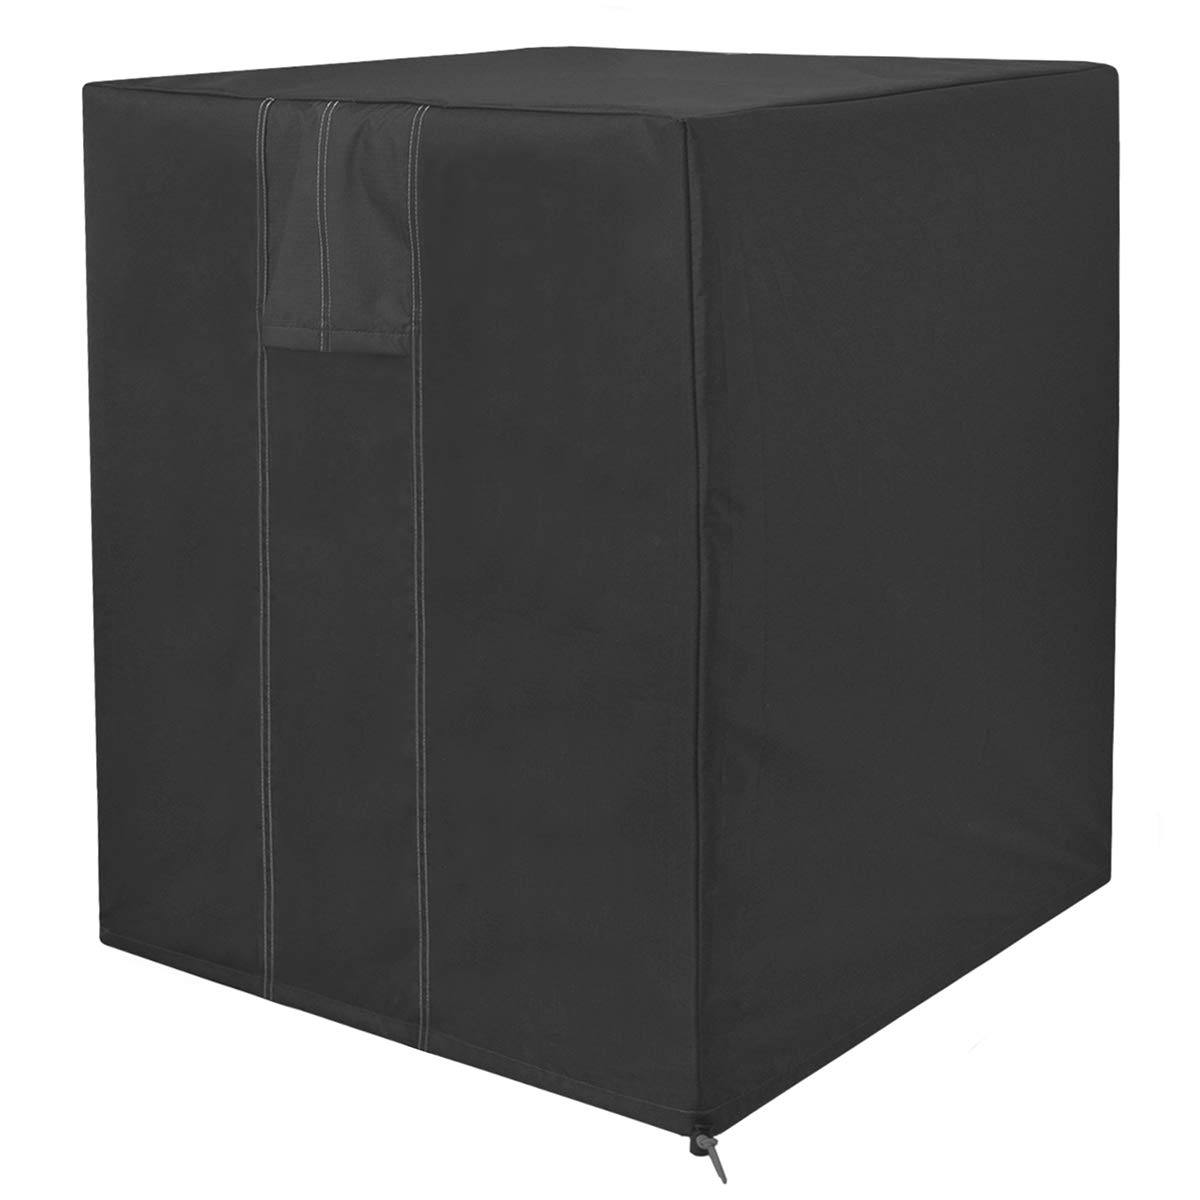 Foozet Central Air Conditioner Covers for Outside Units 26x26x32